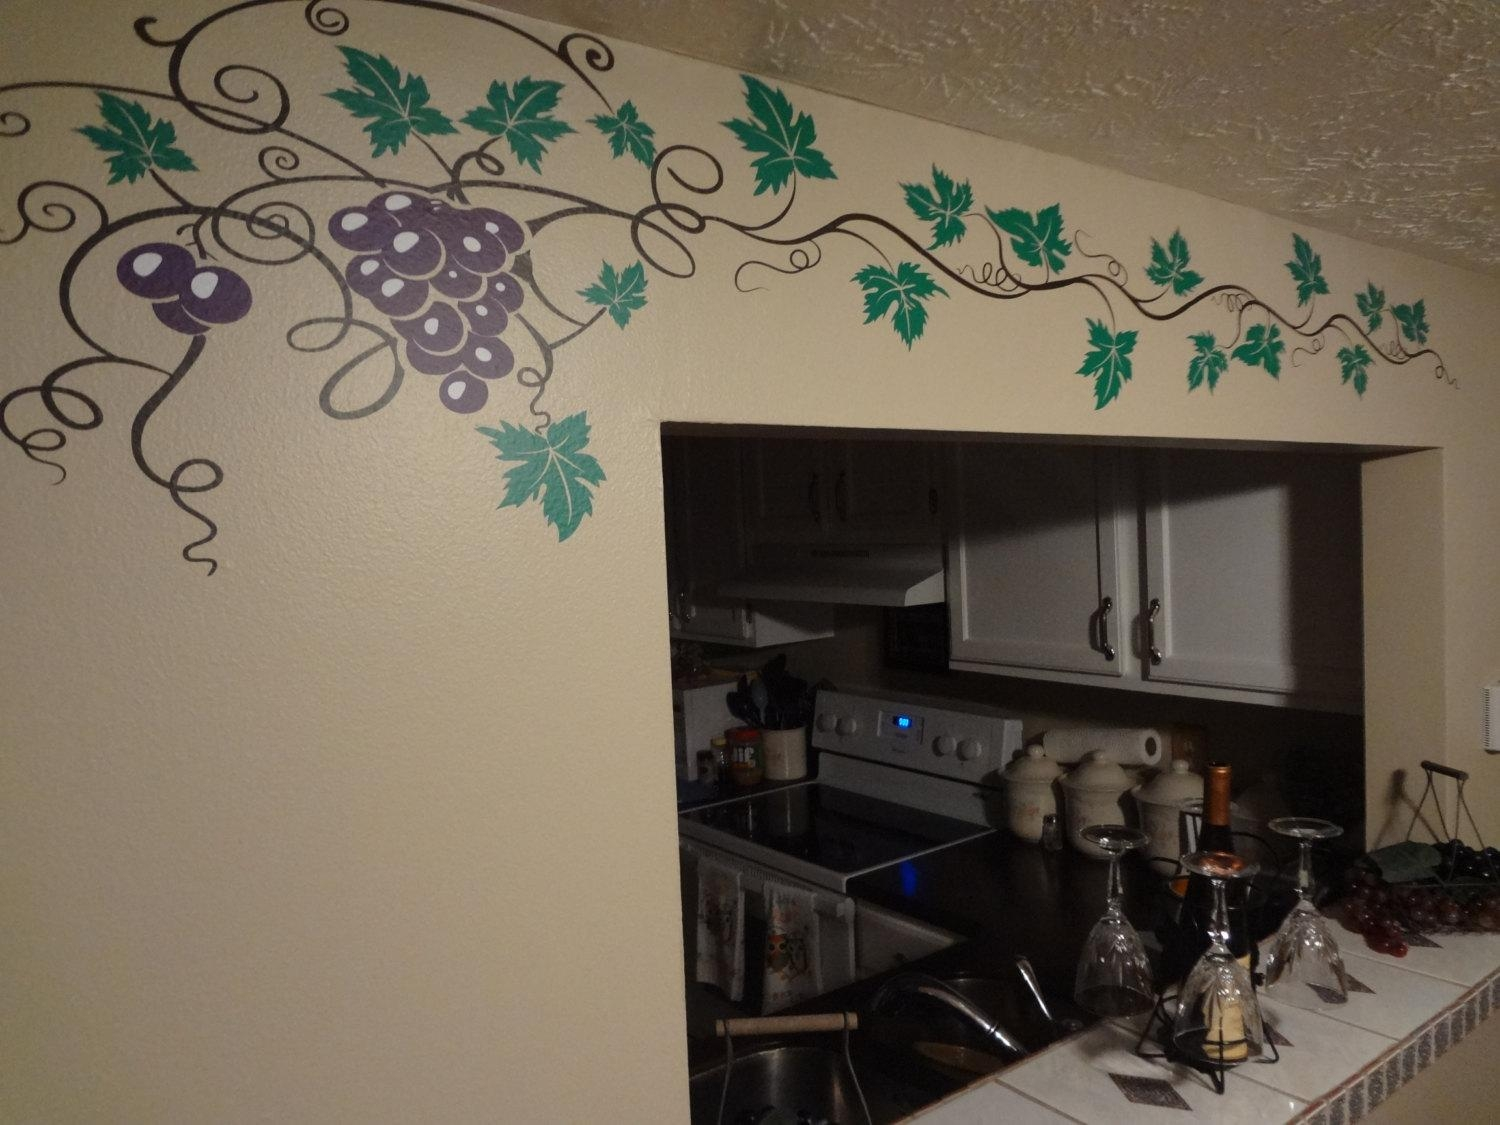 Grape Vine Decal Wine Home Decor Wall Art Sticker Kitchen Pertaining To Grape Vineyard Wall Art (View 8 of 20)